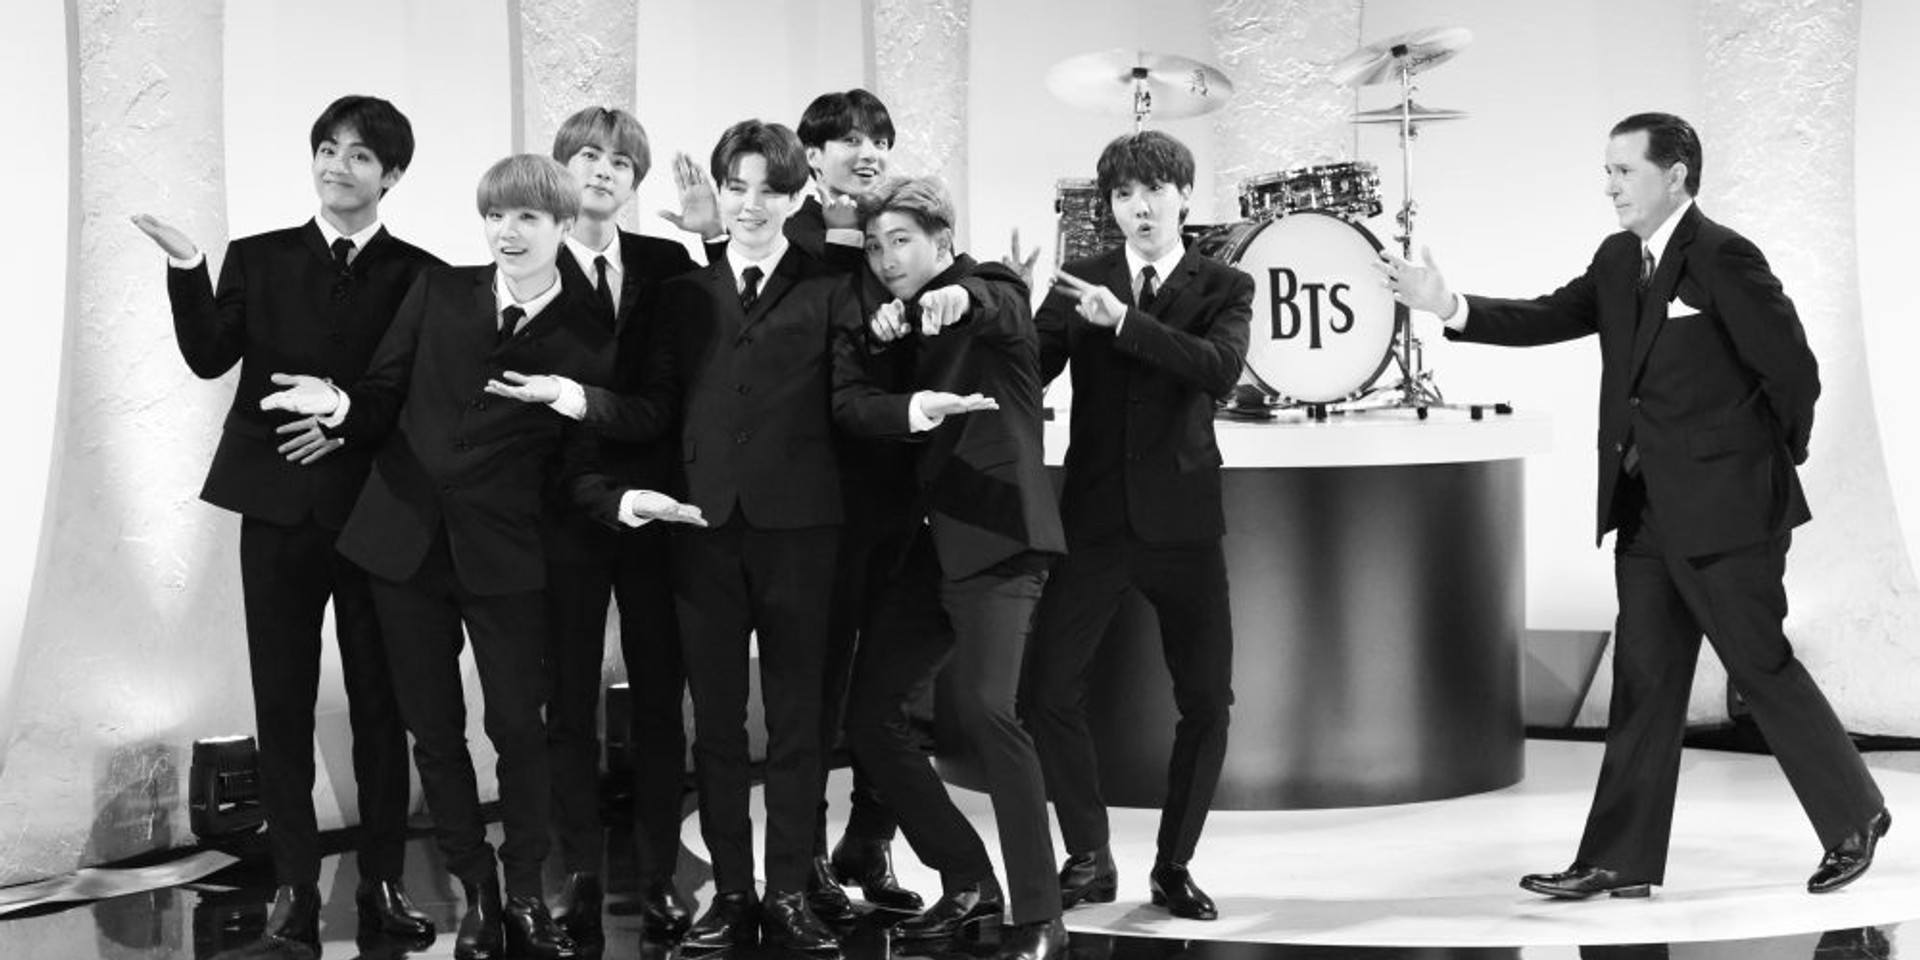 Twitter reacts to BTS' homage to The Beatles on the Late Show with Stephen Colbert